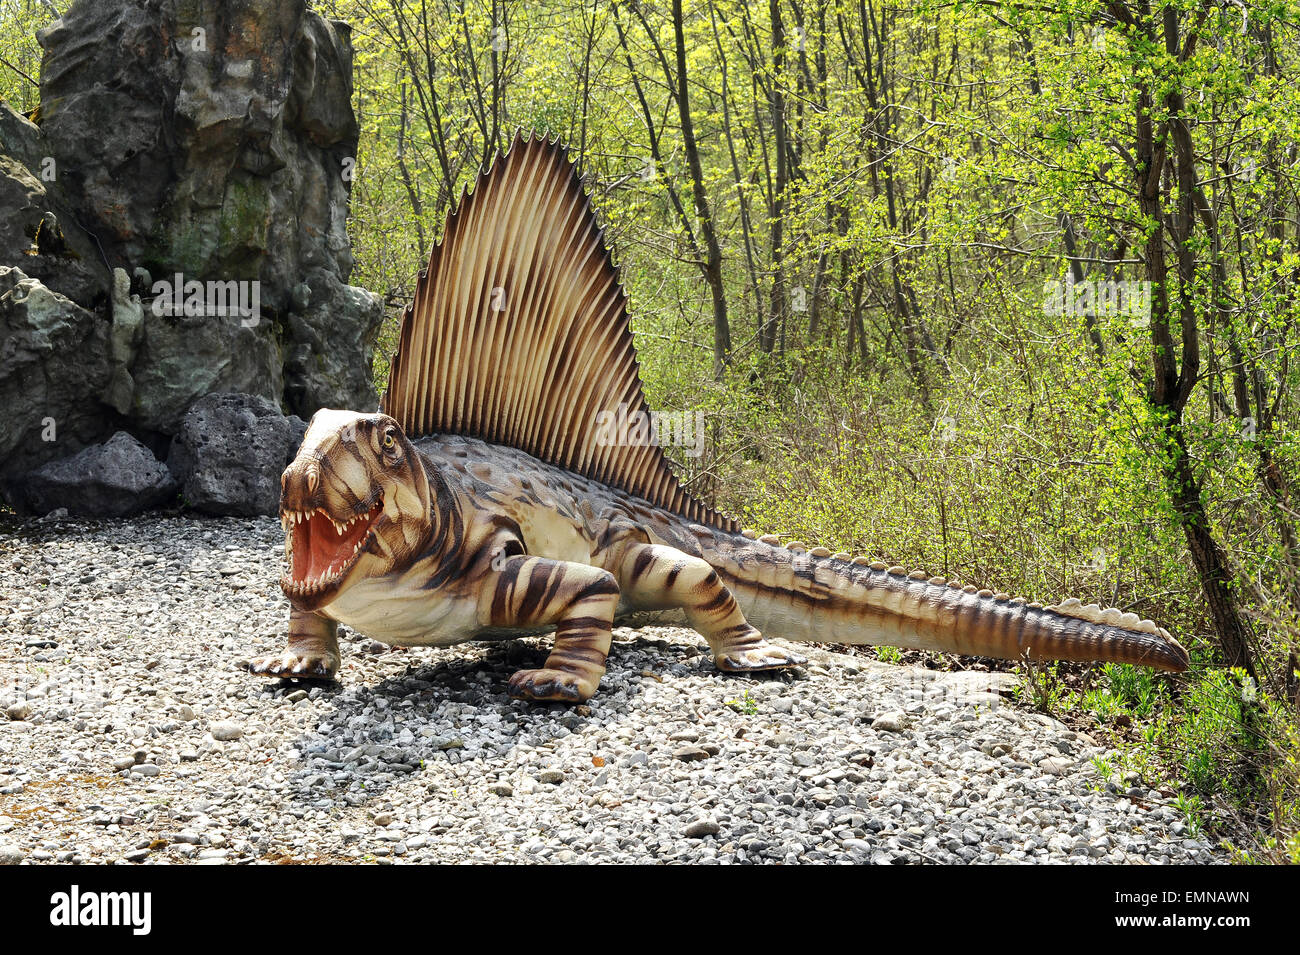 Model of Extinct Dimetrodon Dinosaur - Stock Image